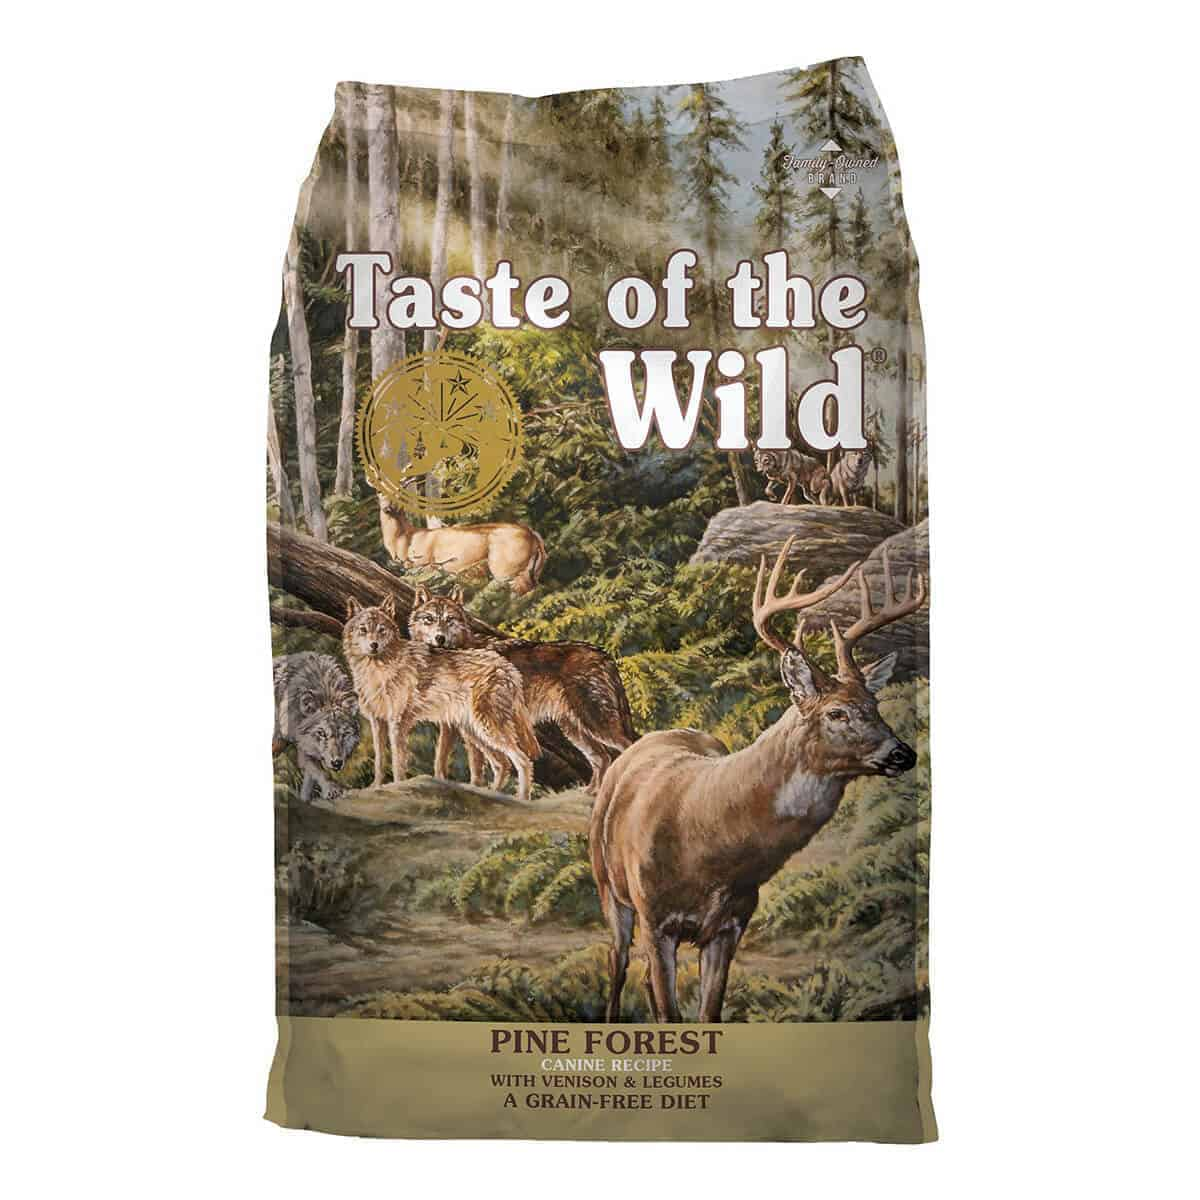 Taste of the Wild Pine Forest with Venison and Legumes, 2 kg (4.41 lb)